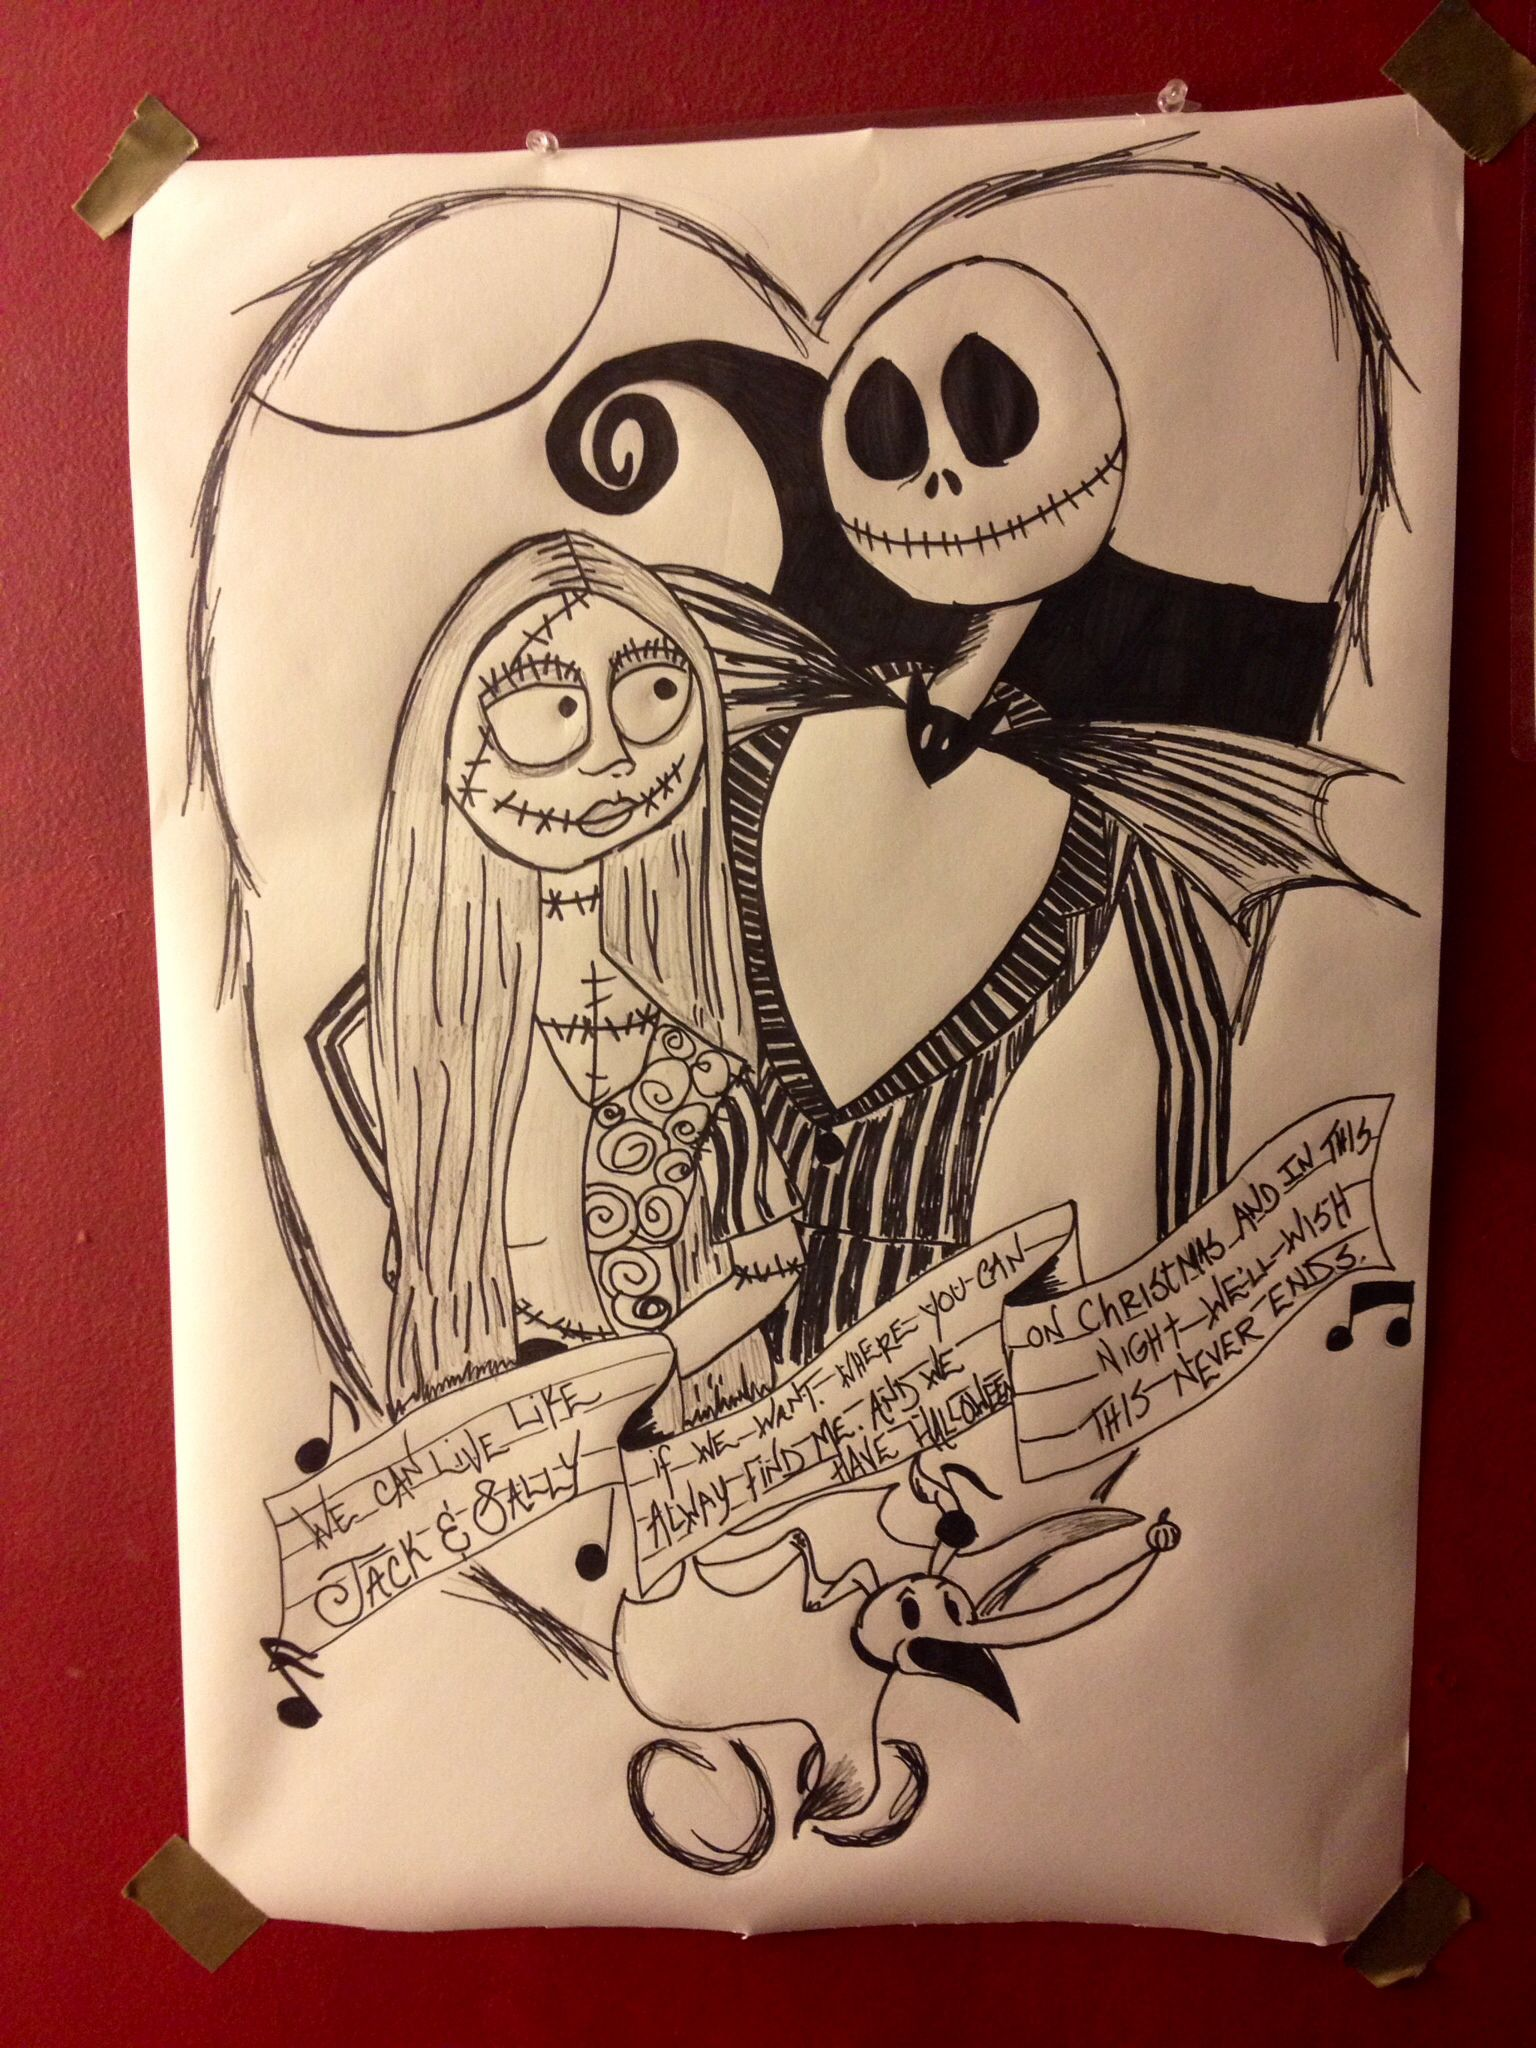 """Drew this for my husband with the Blink 182 lyrics """"We can live like Jack and Sally if we want ..."""